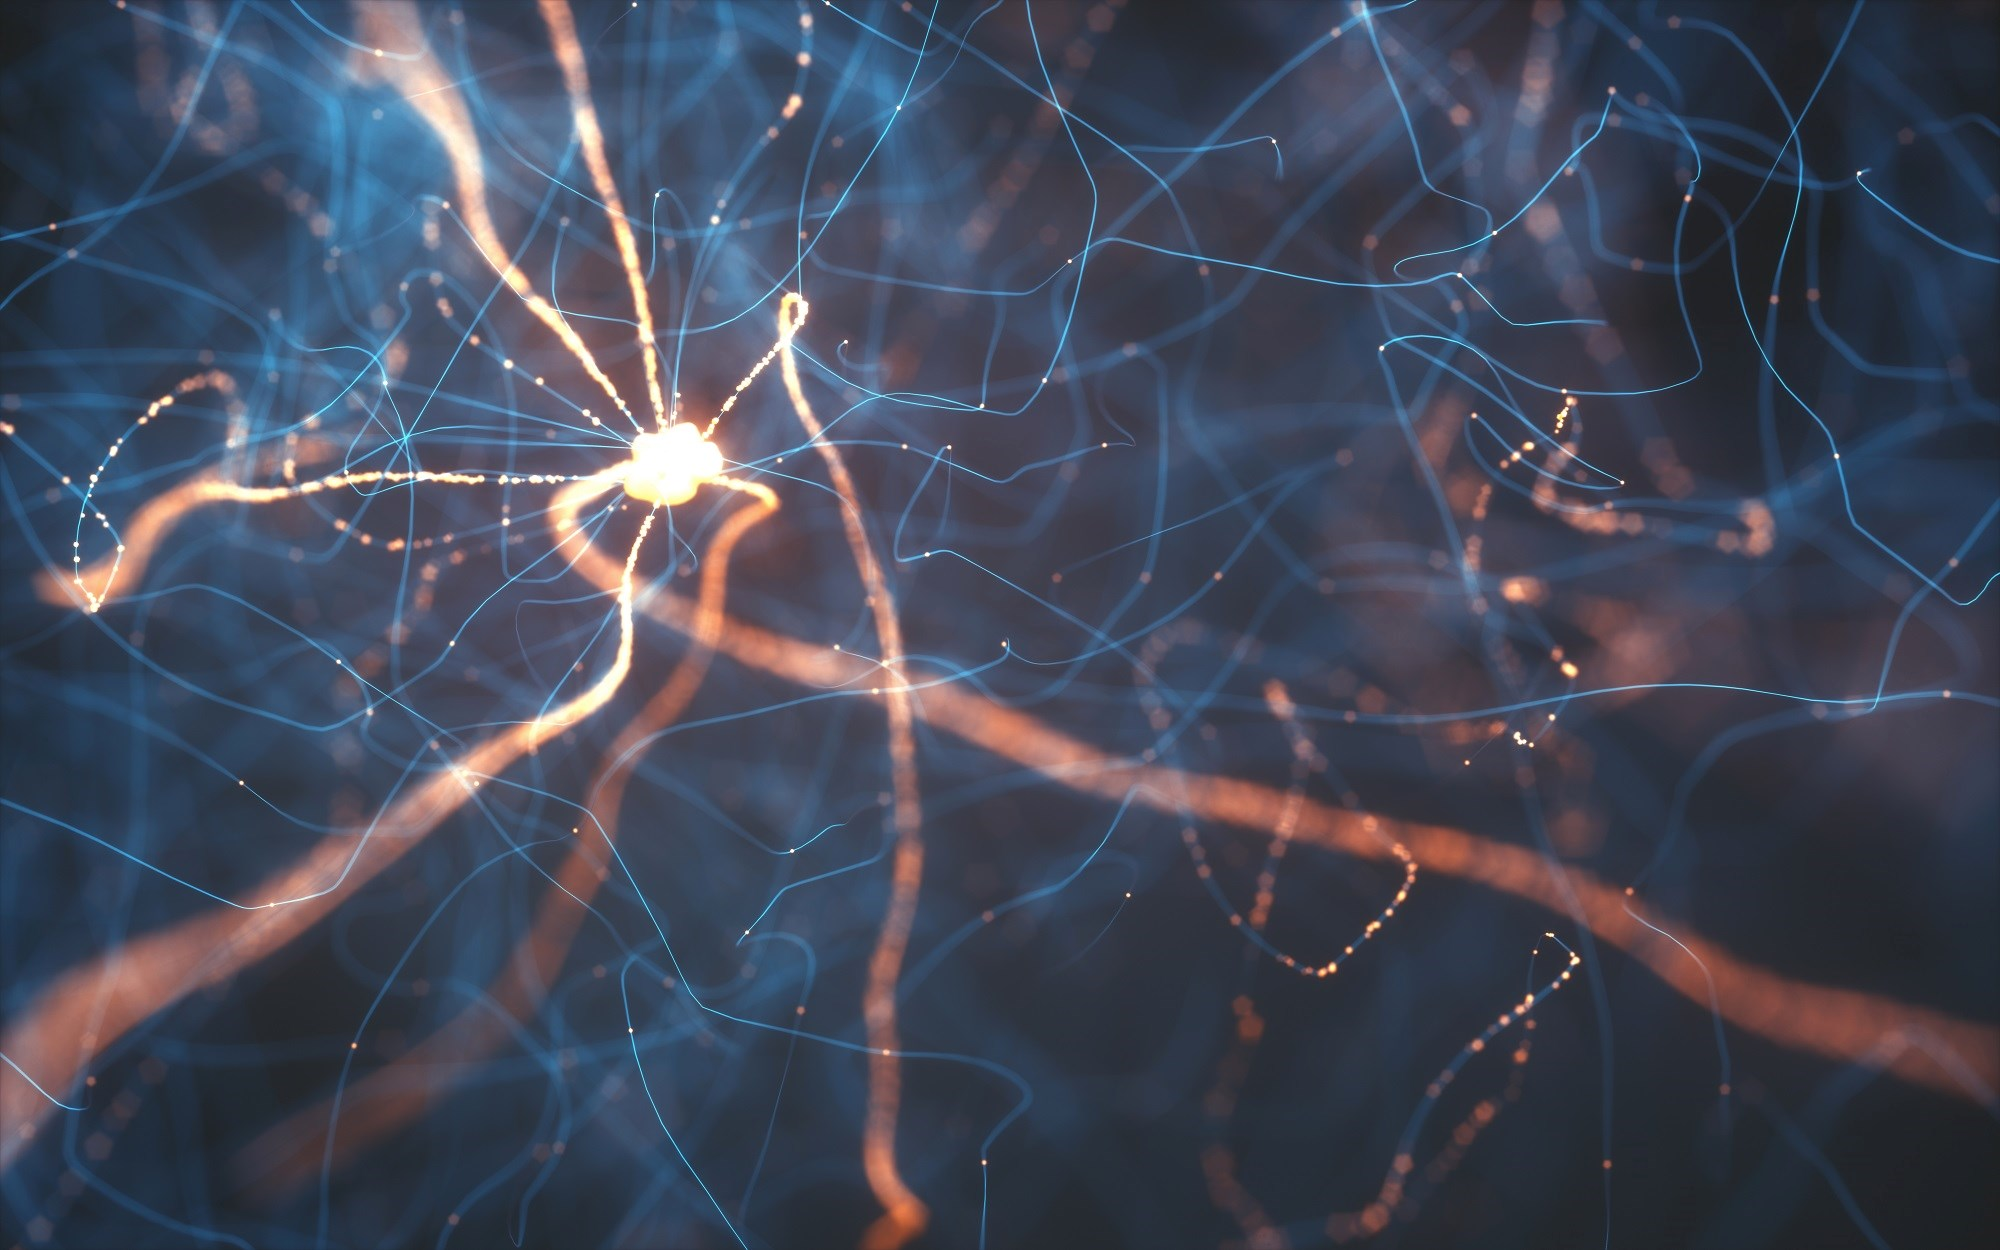 A physician encounter for cerebrovascular, central or peripheral nervous system-related disease or disorder of the same sense organs was associated with a higher odds of MS.